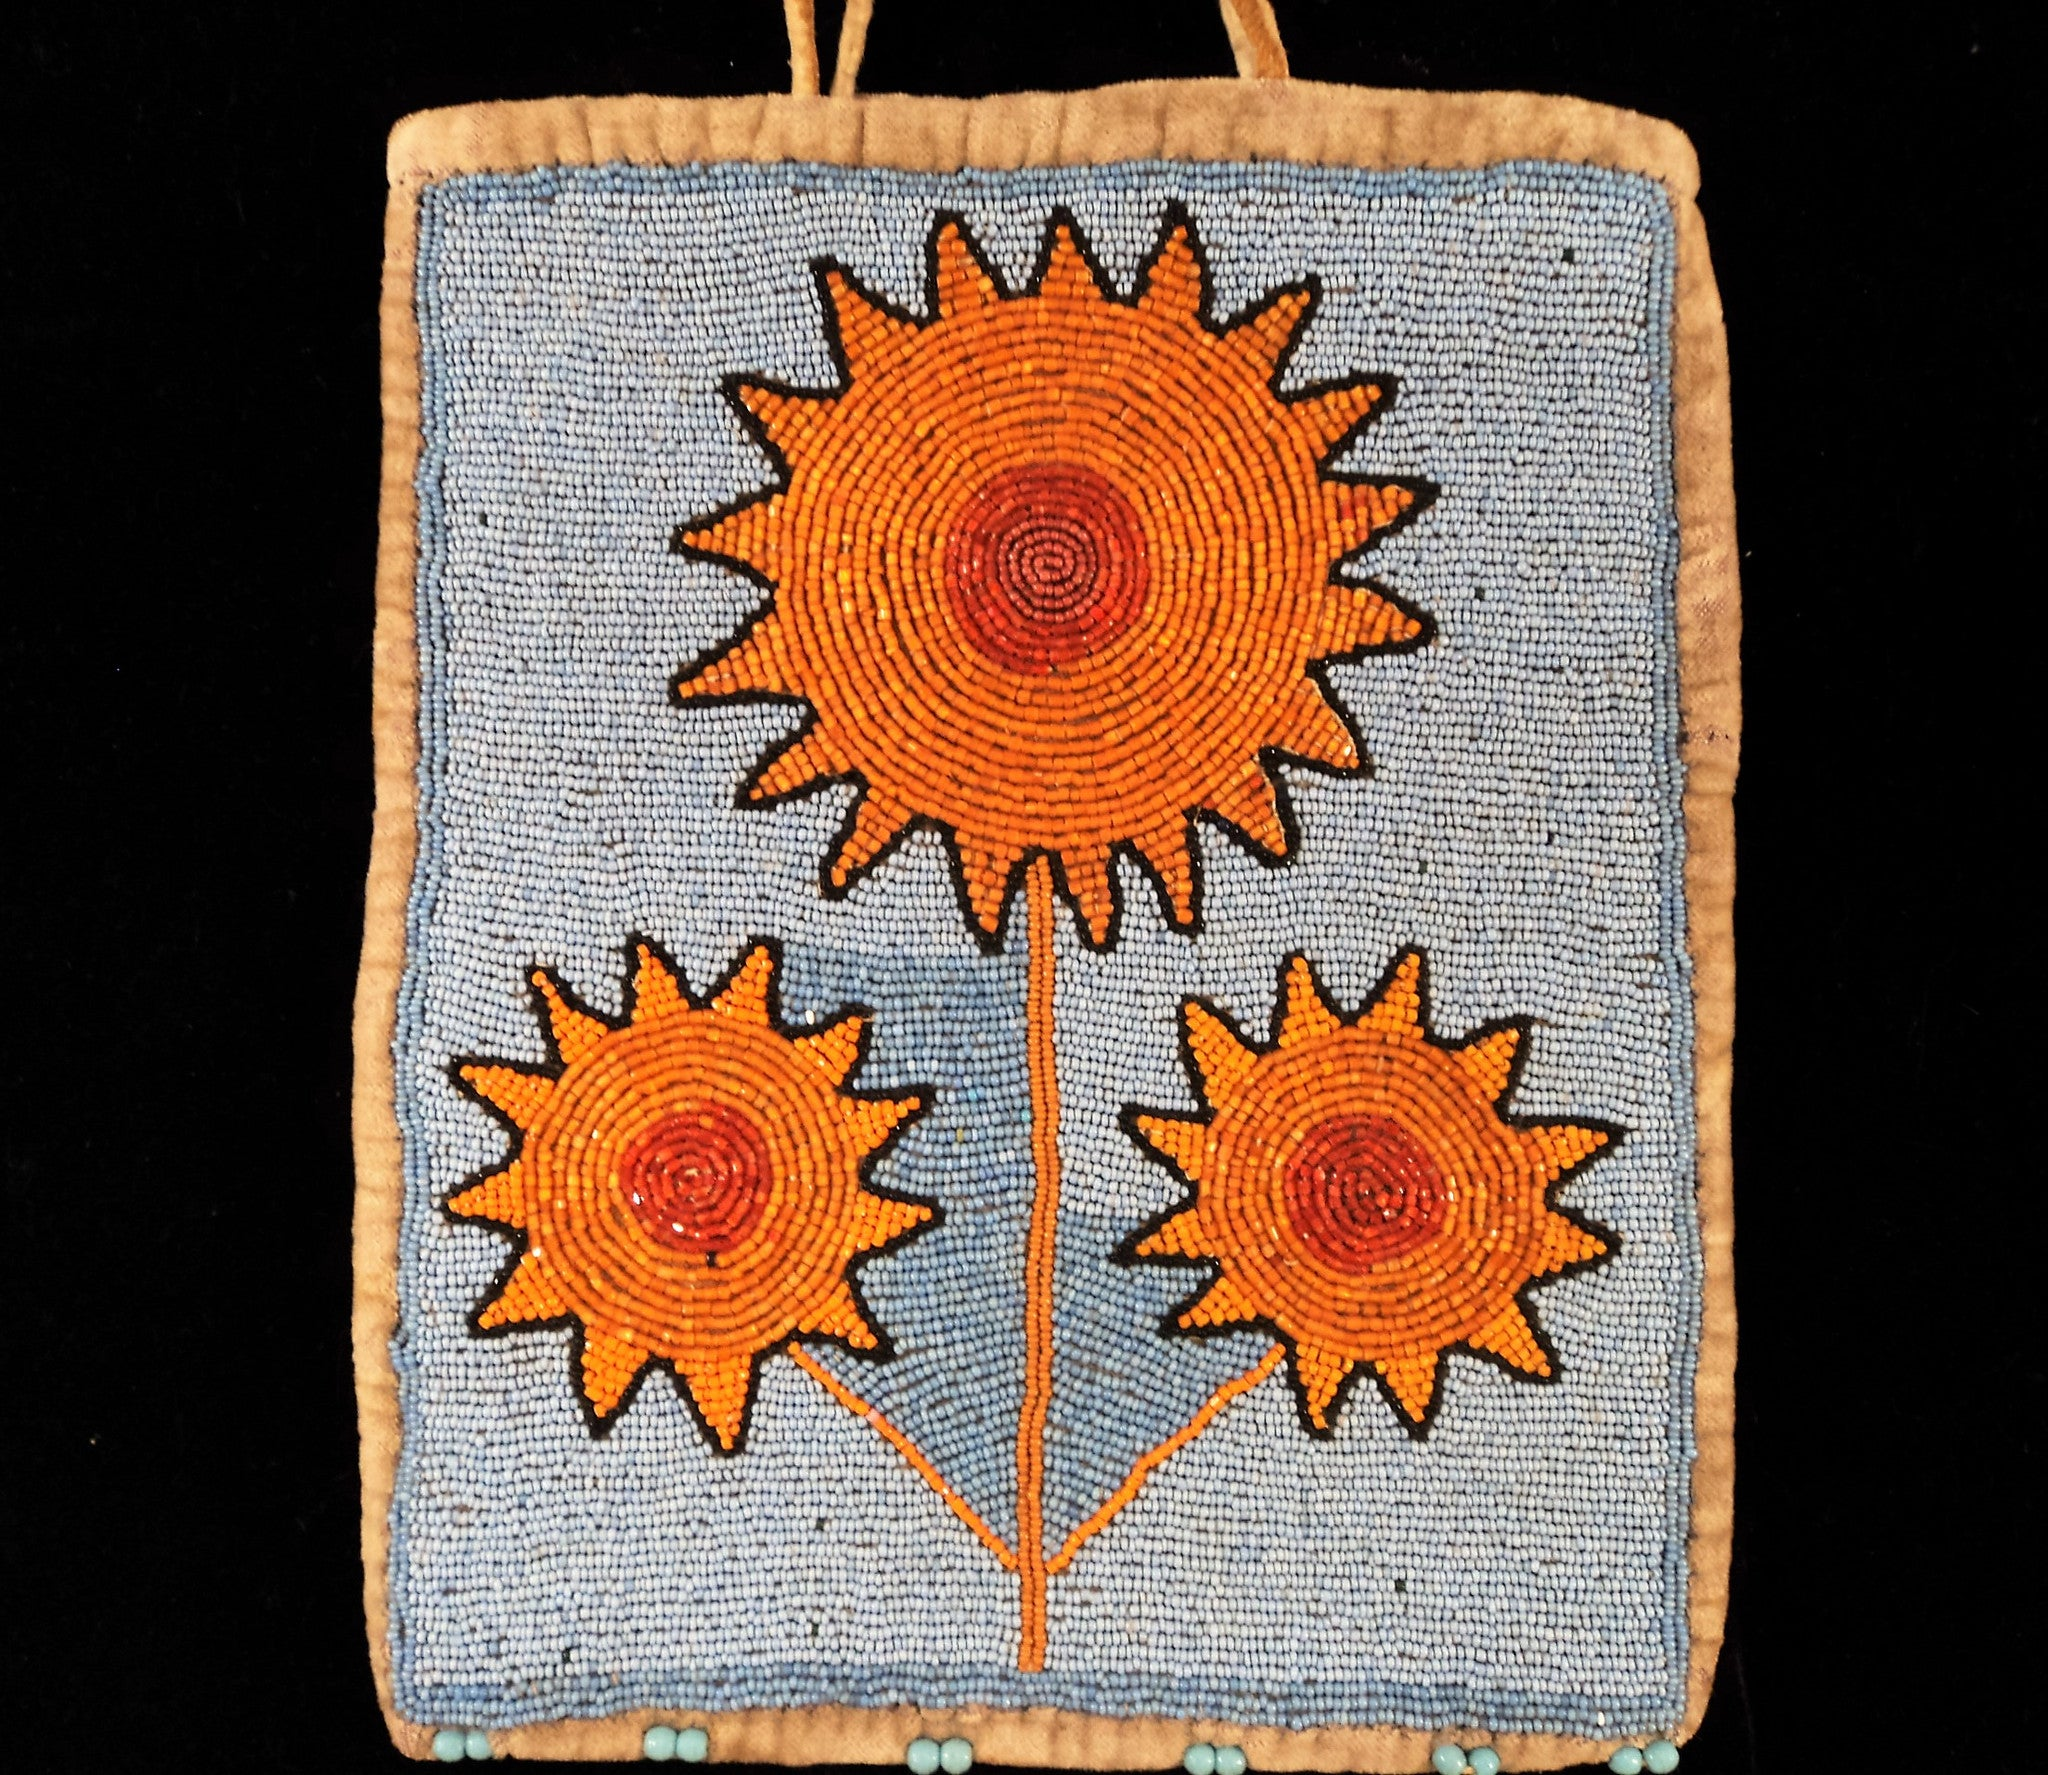 Native American Plains Indian Beaded Velvet Bag with Flowers